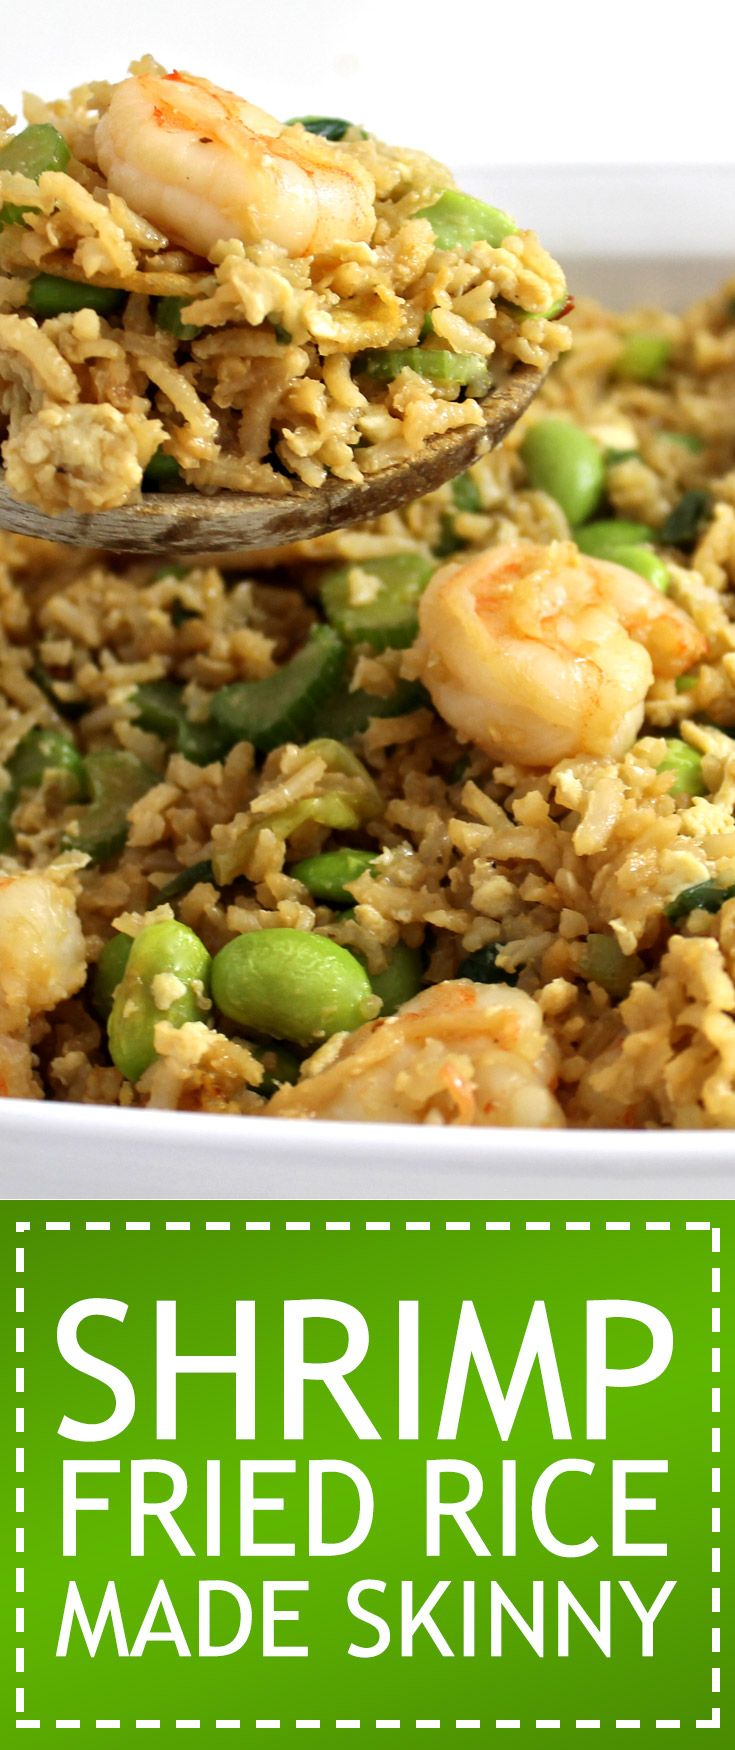 Shrimp Fried Rice Made Skinny. What a wonderfully healthy version of shrimp fried rice.  Each serving has 275 calories, 8g fat & 7 Weight Watchers POINTS PLUS. http://www.skinnykitchen.com/recipes/shrimp-fried-rice-made-skinny/